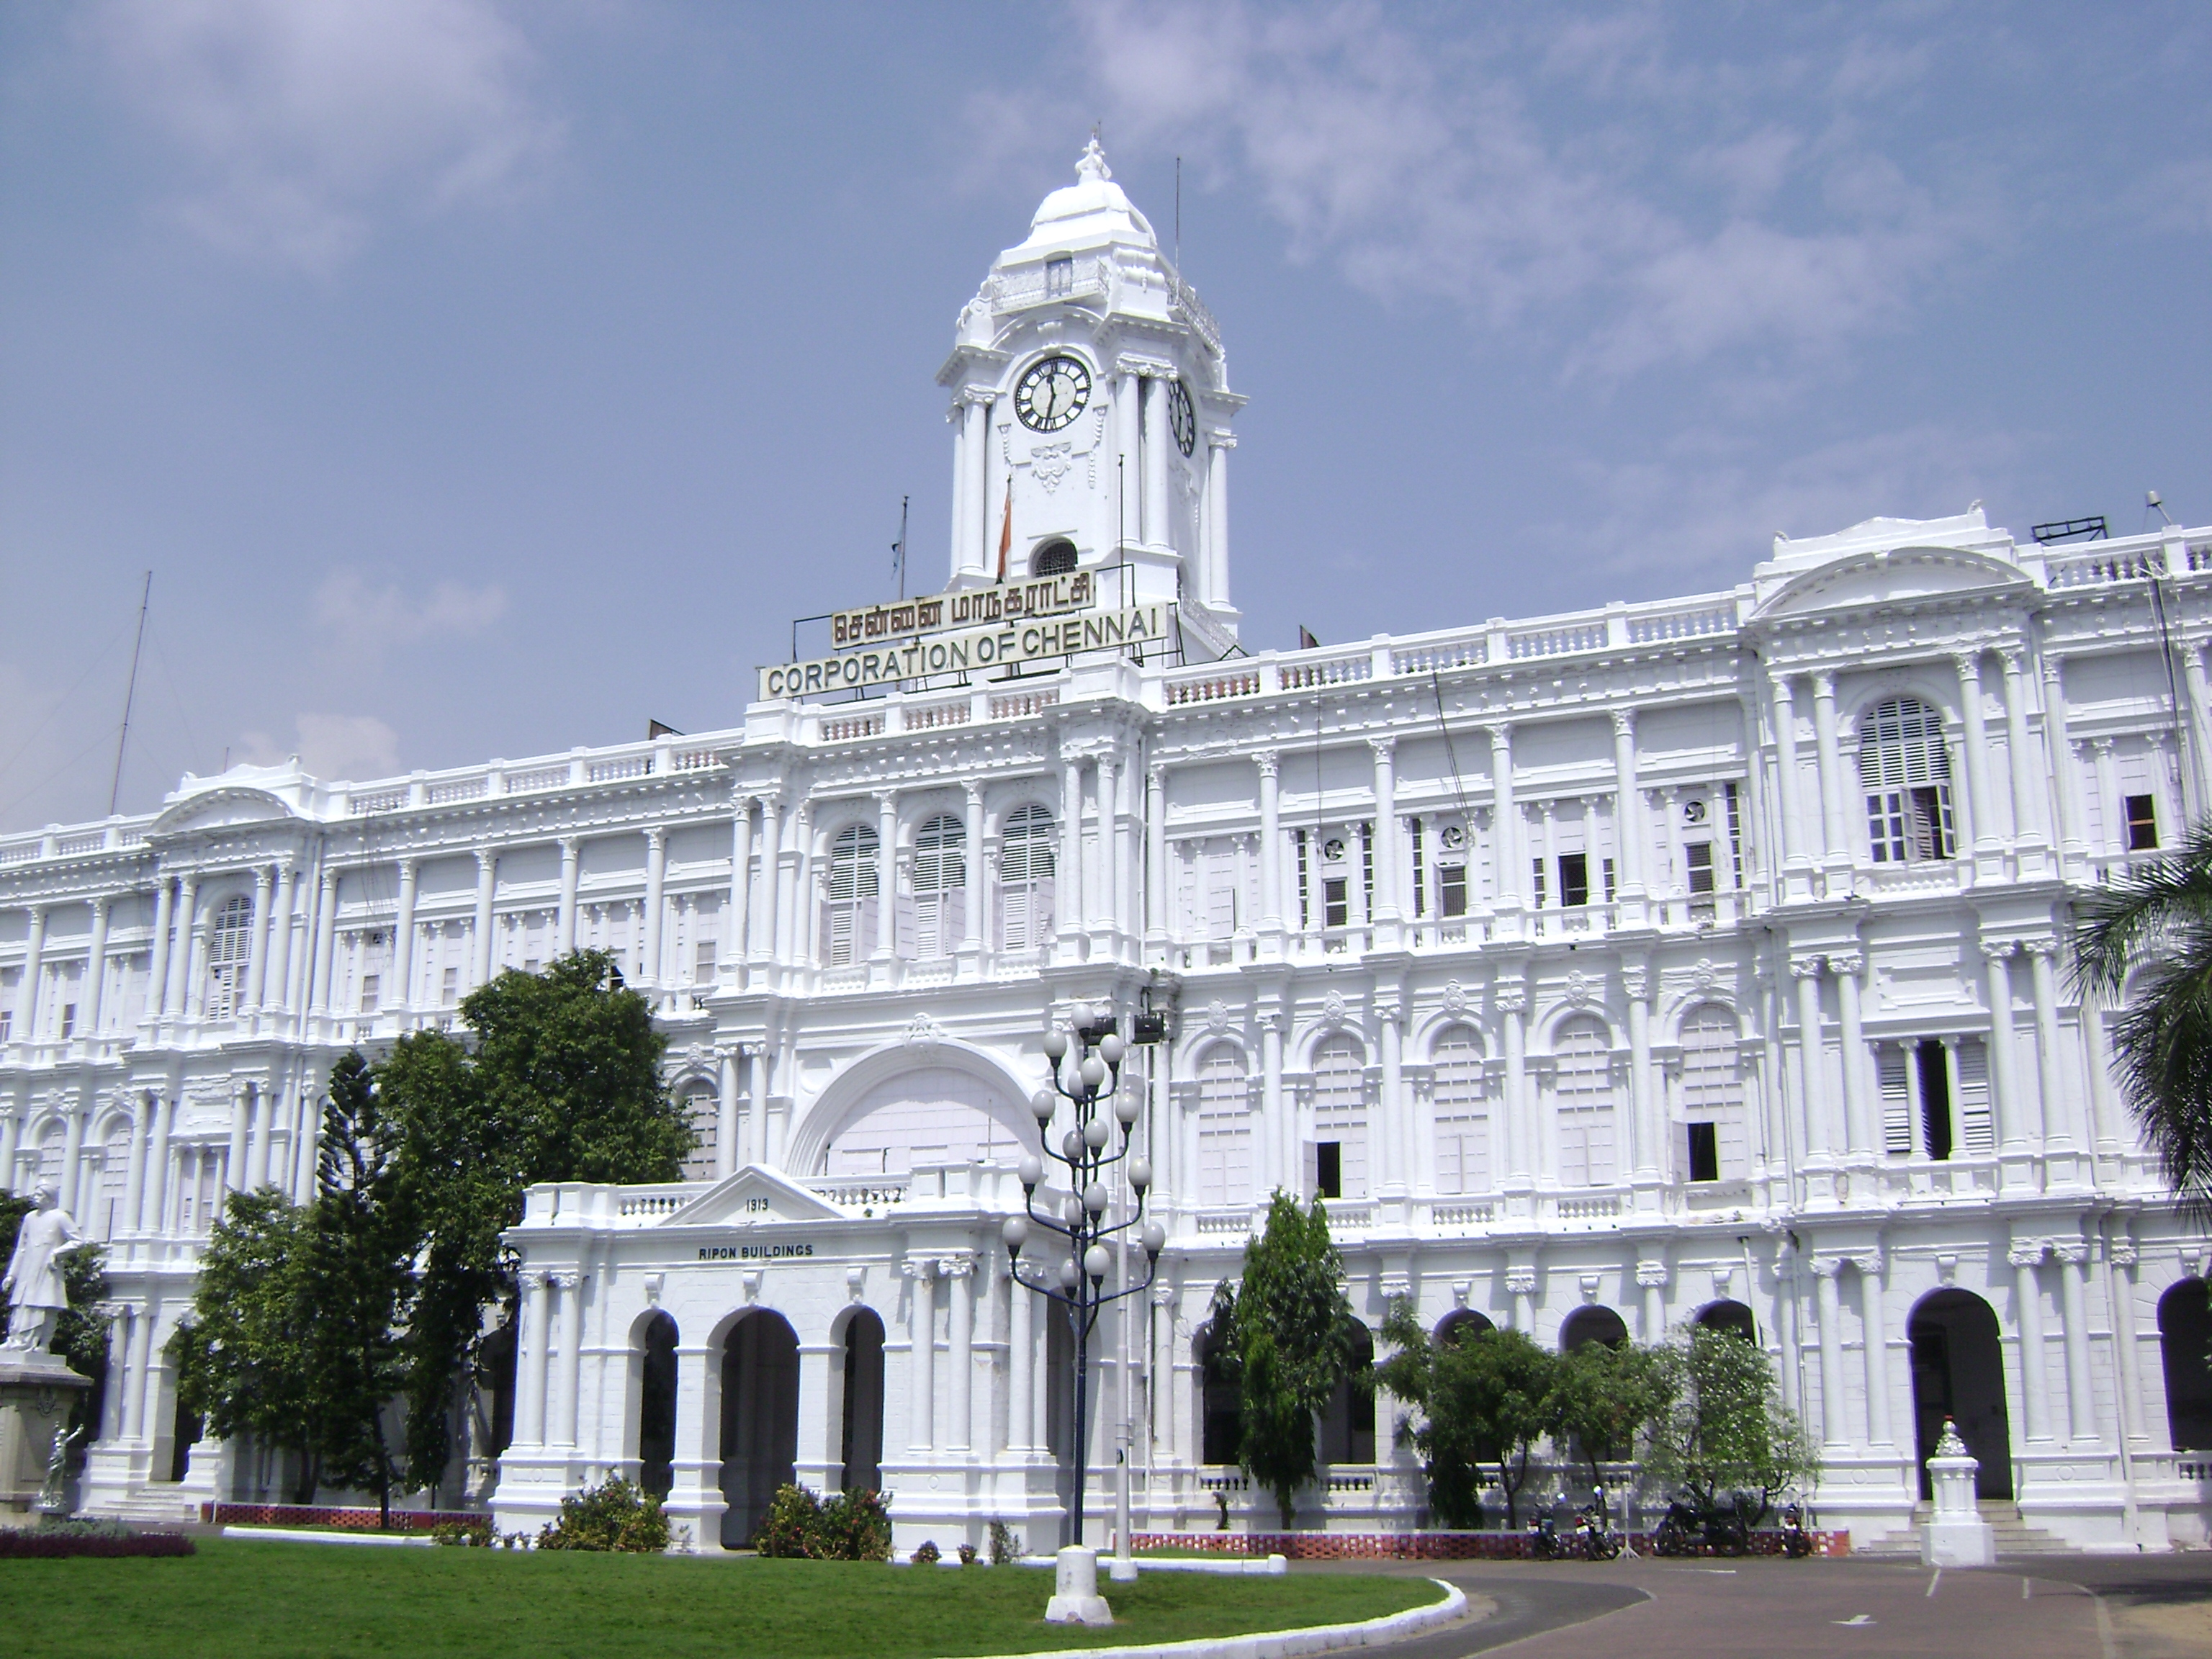 http://upload.wikimedia.org/wikipedia/commons/5/5b/Ripon_Building_Chennai.JPG